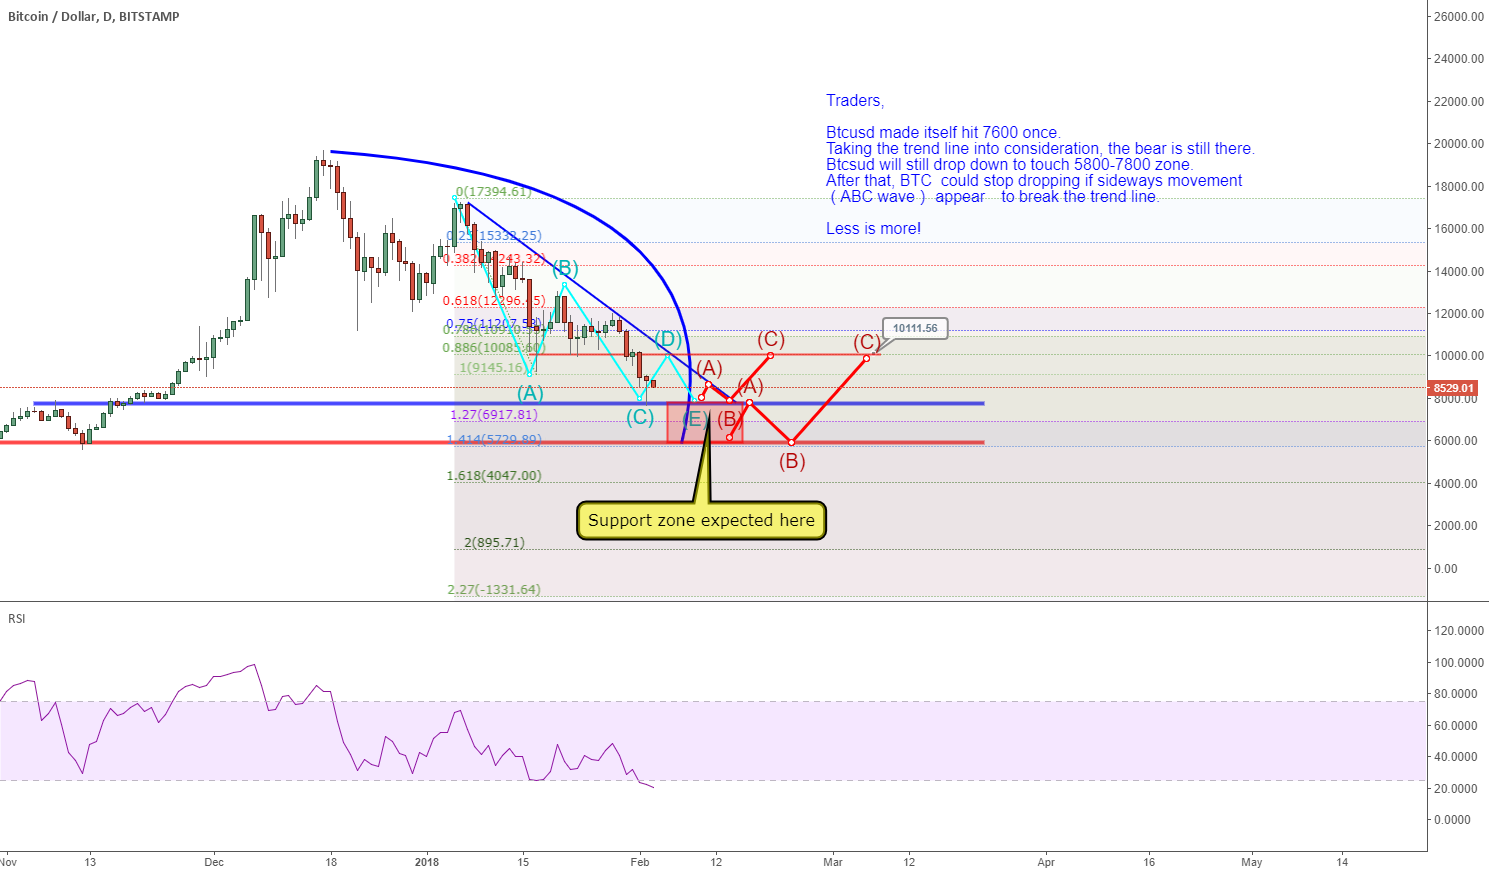 BTCUSD: 5800-7800 as a possible support zone